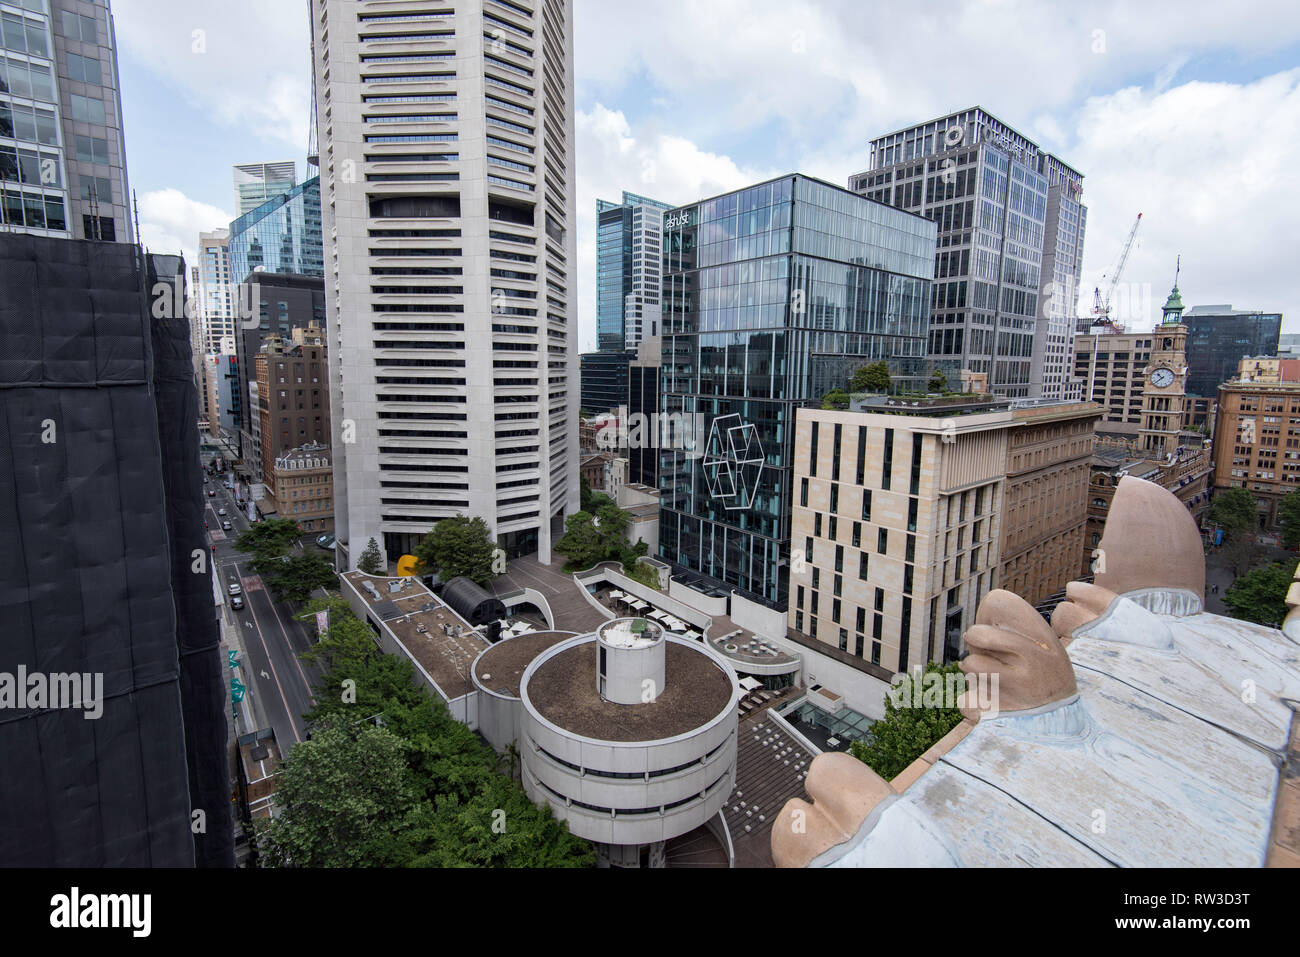 Looking down from above on the forecourt area of the Harry Seidler designed MLC tower in Martin Place, Sydney Australia - Stock Image